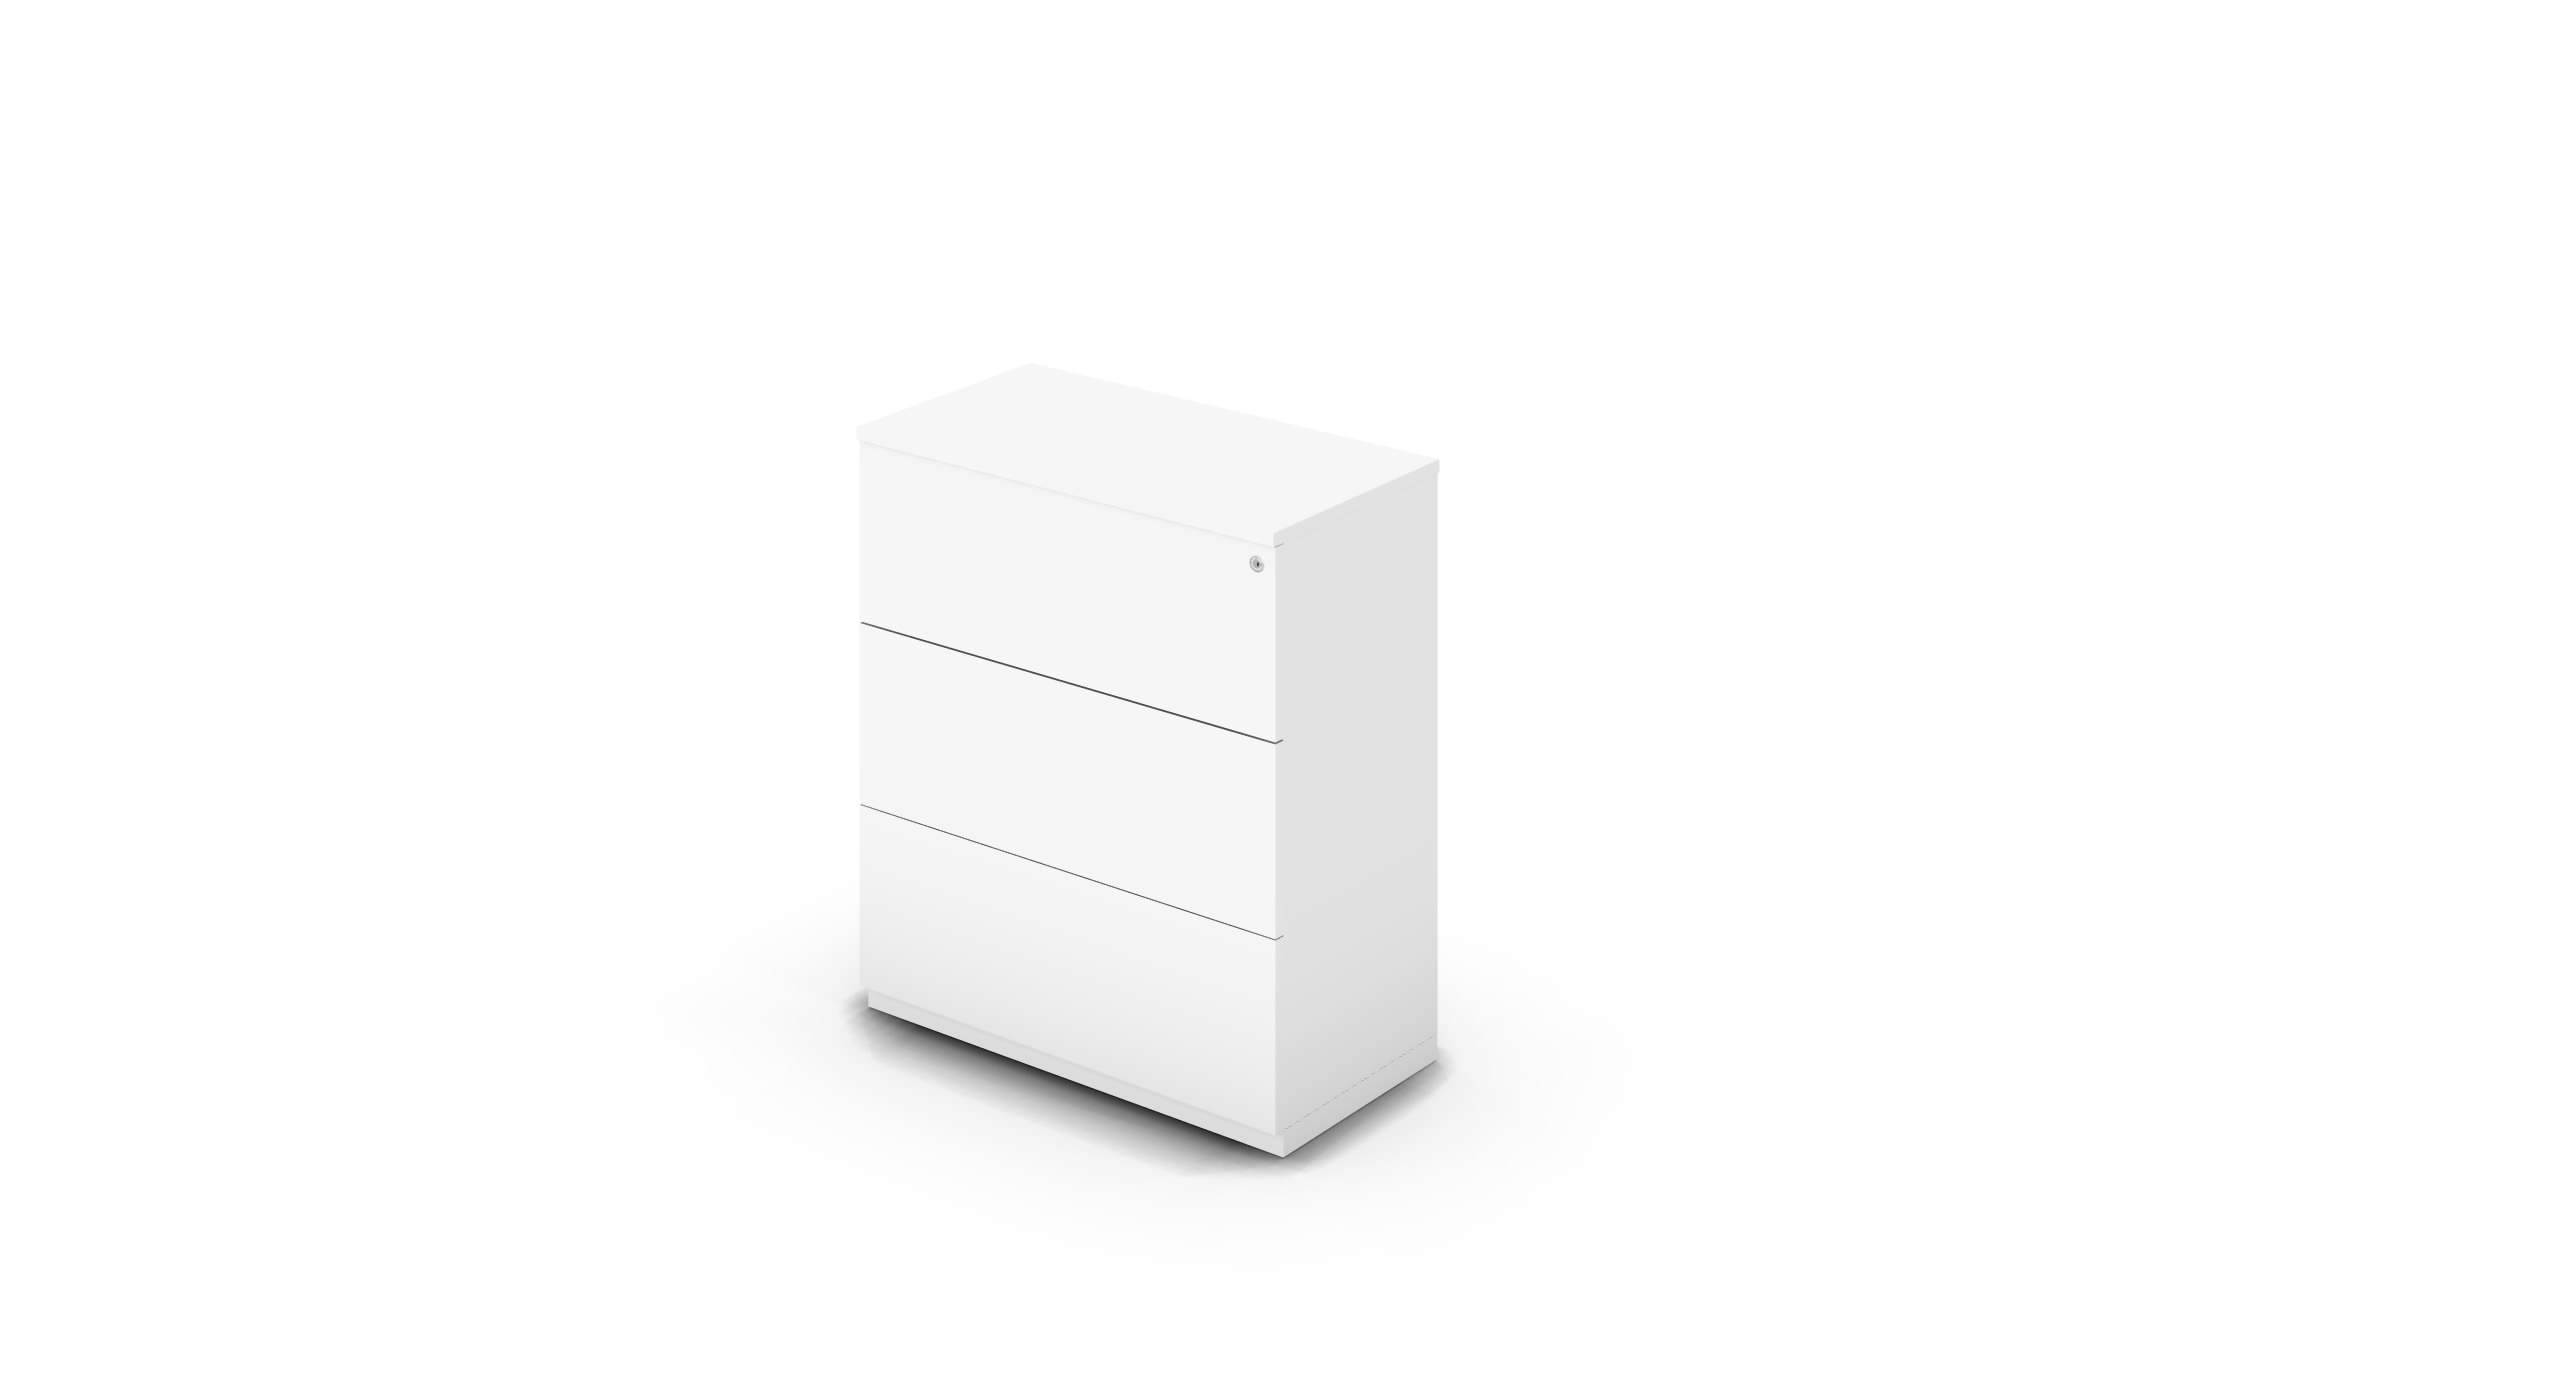 Cabinet_900x450x1125_DR_White_Push_WithCylinder